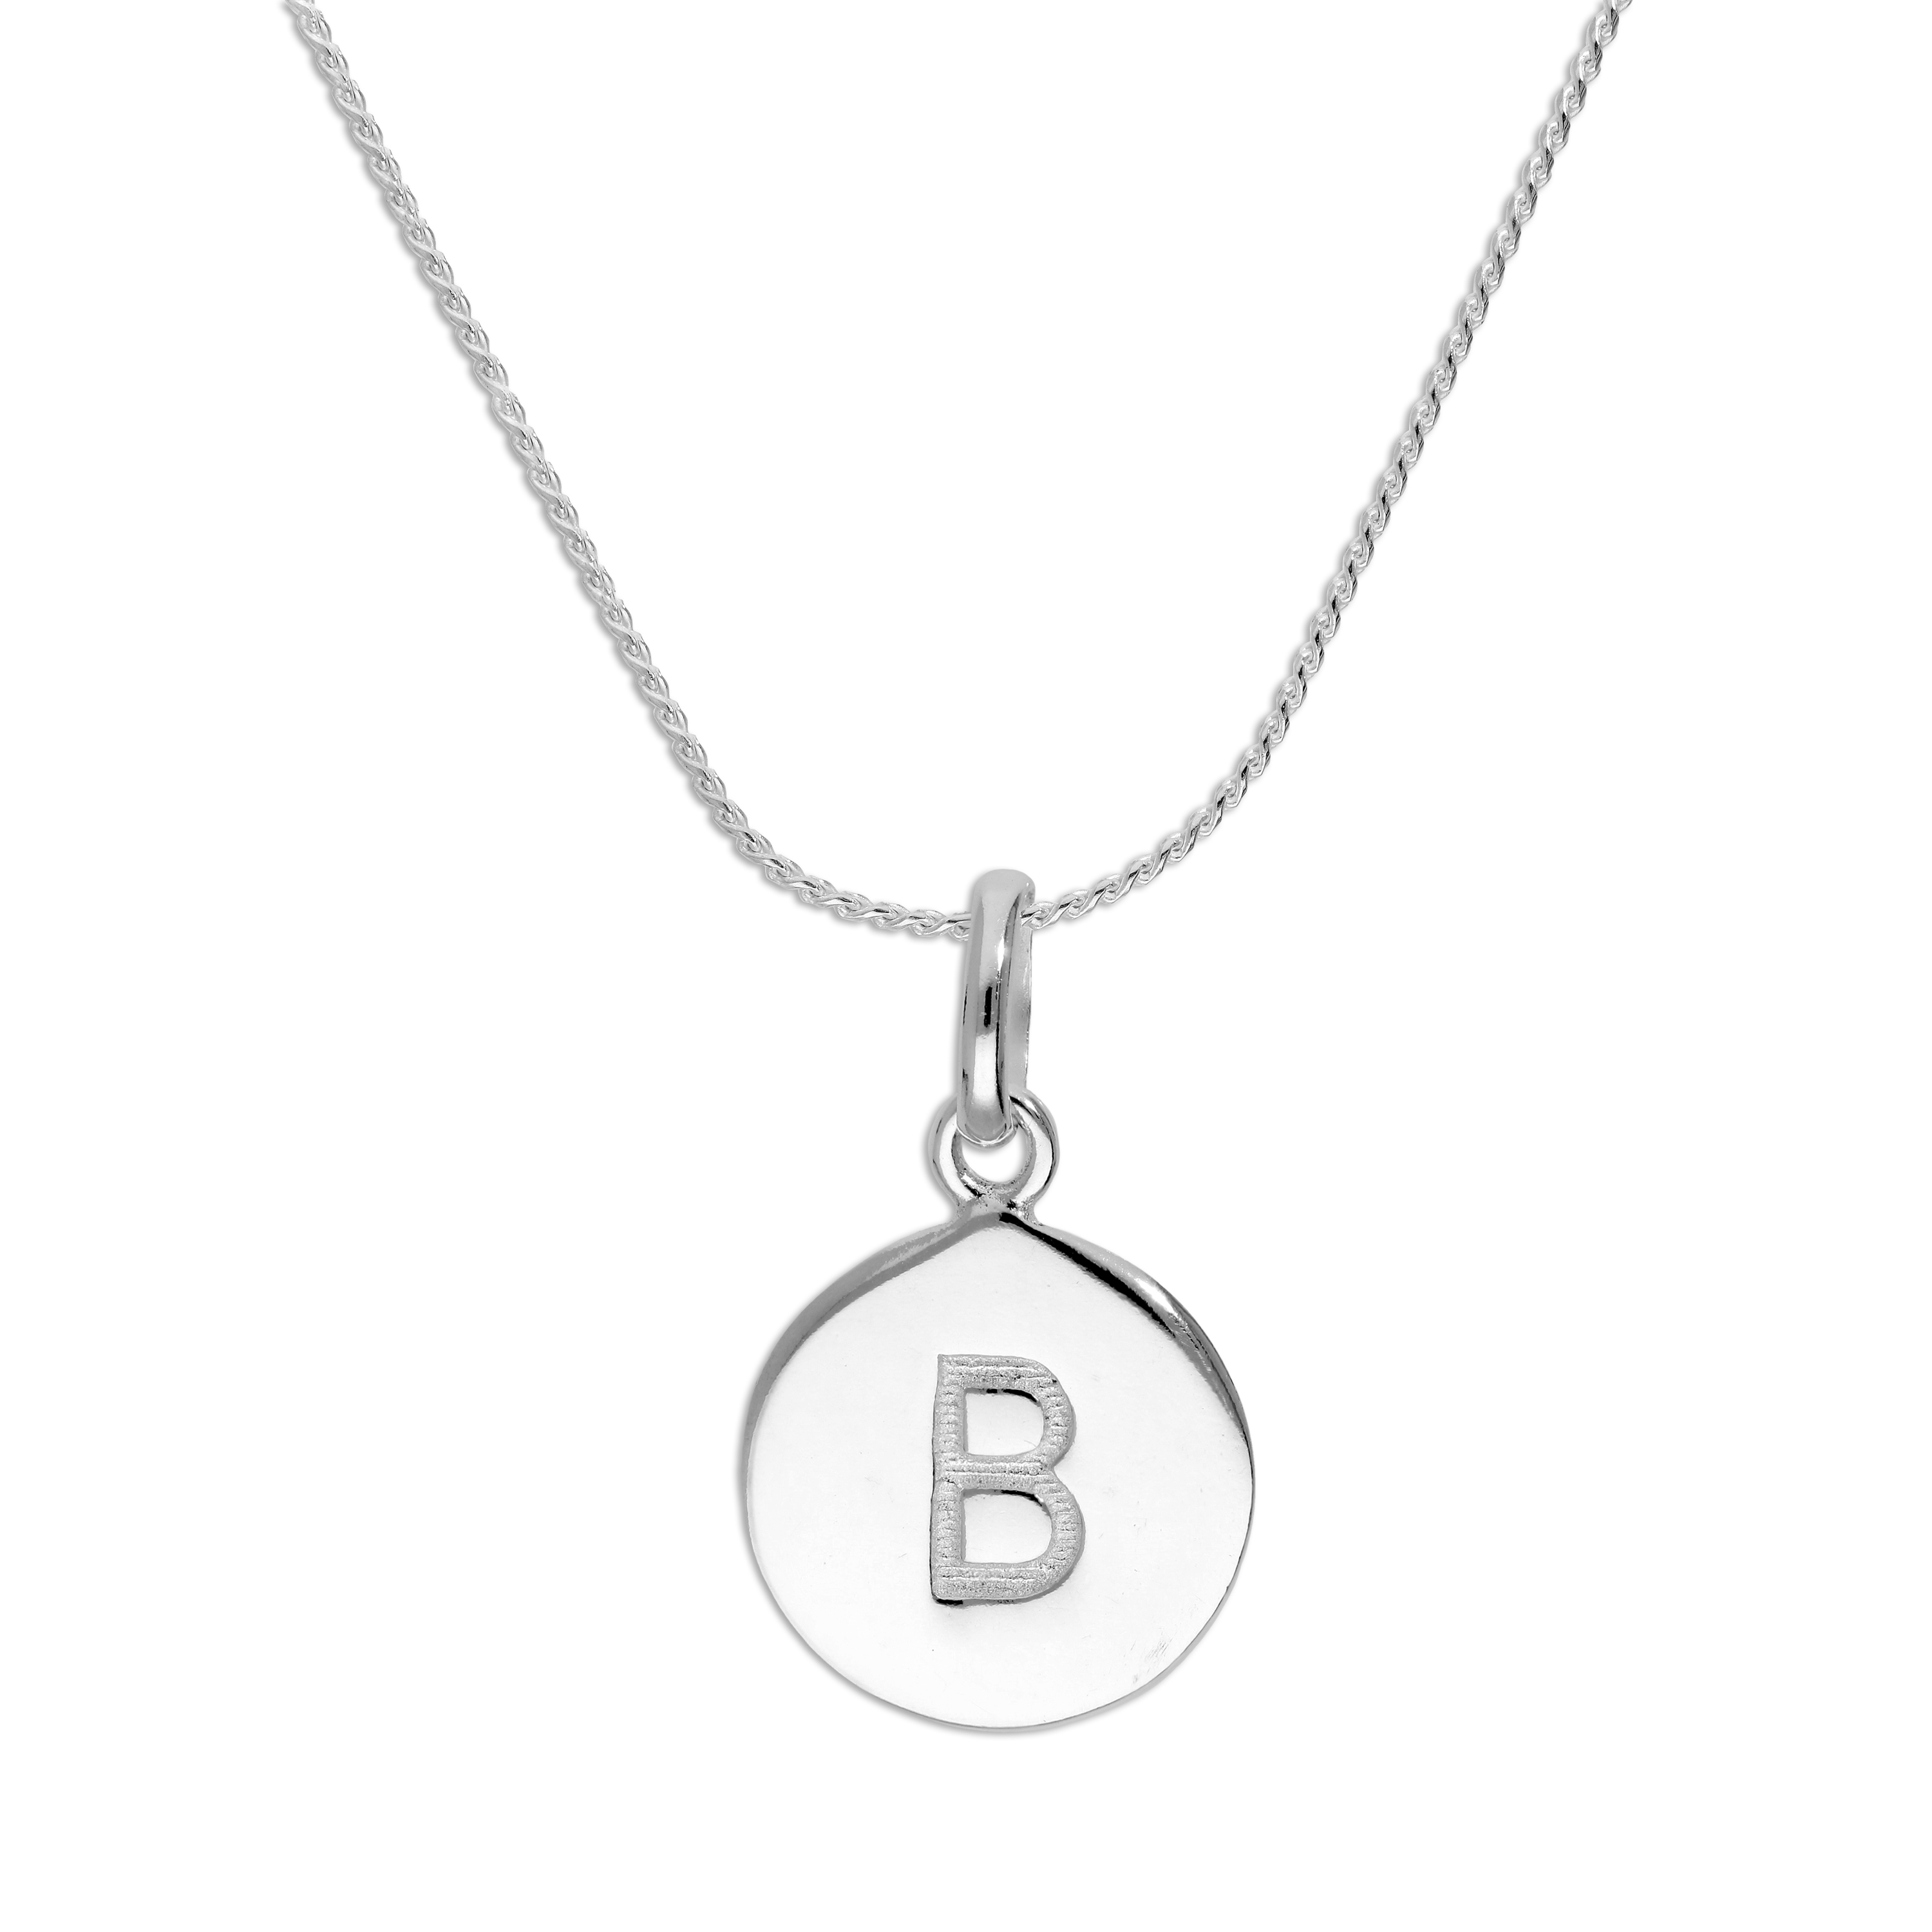 An image of Sterling Silver Initial Letter B Necklace 20 Inches Blue